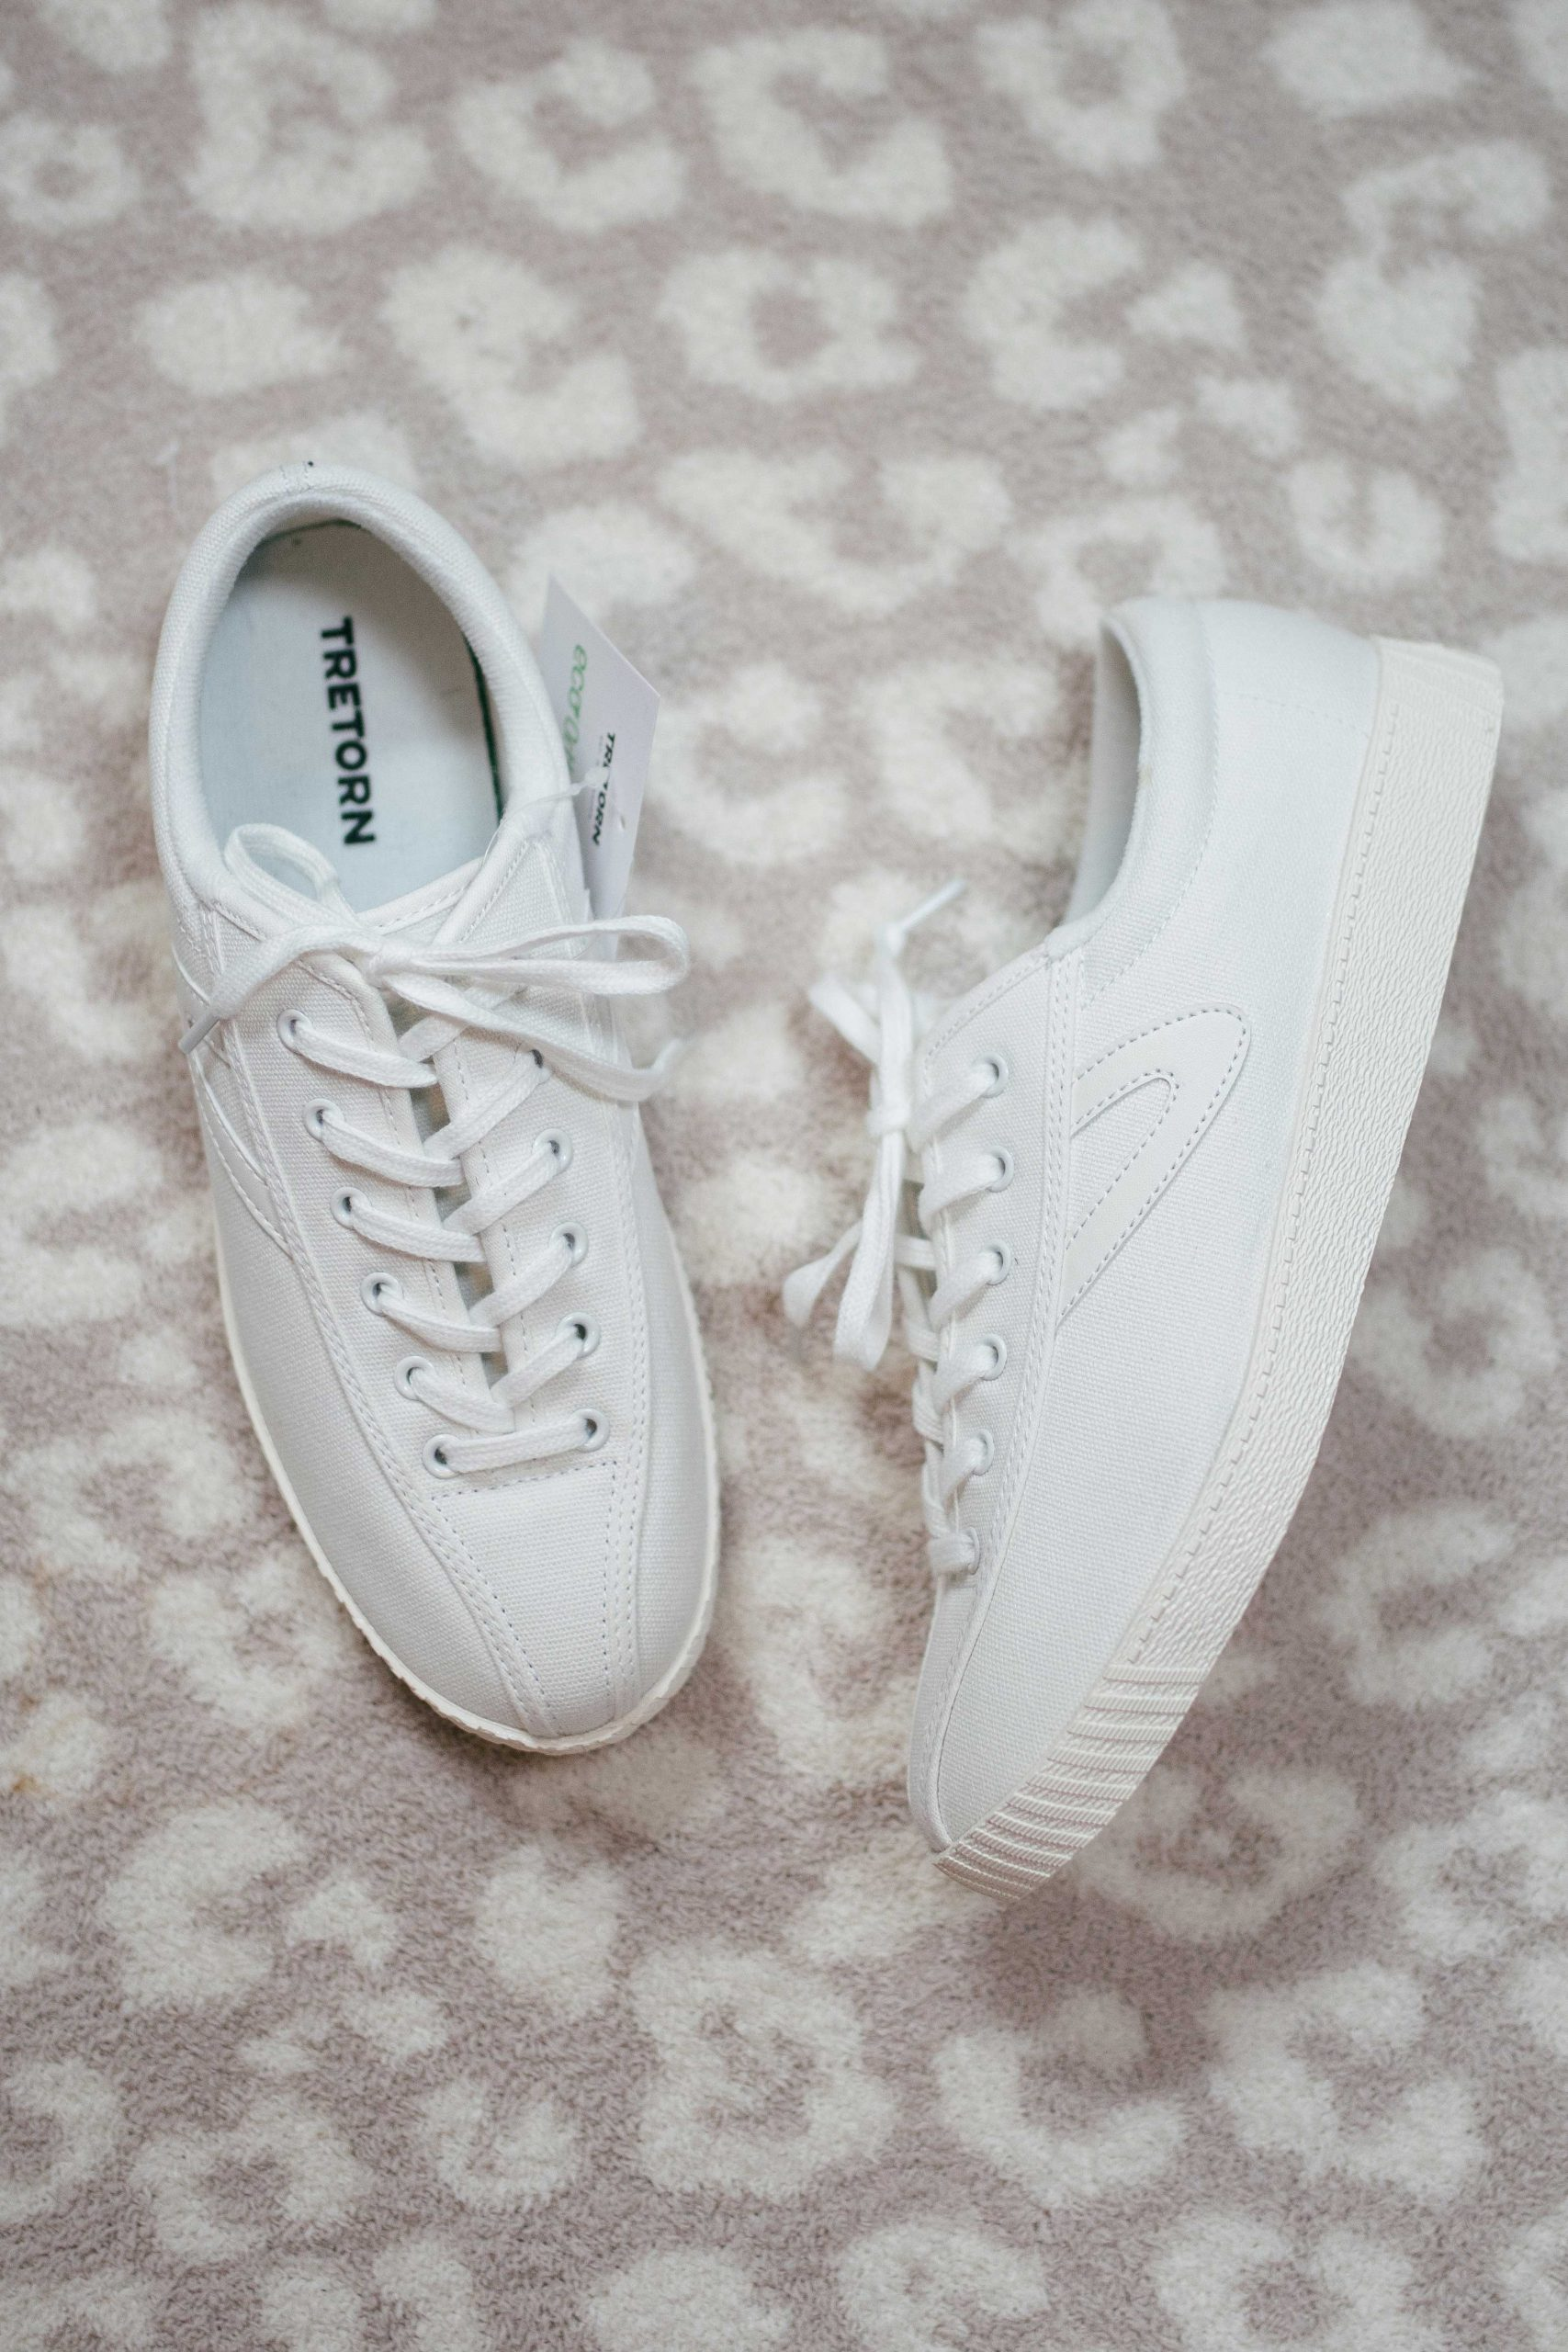 Virginia blogger, Lauren Dix, tries on 10 different pairs of white sneakers for the ultimate white sneaker review! The Tretorn Nylite Plus pictured here are included!